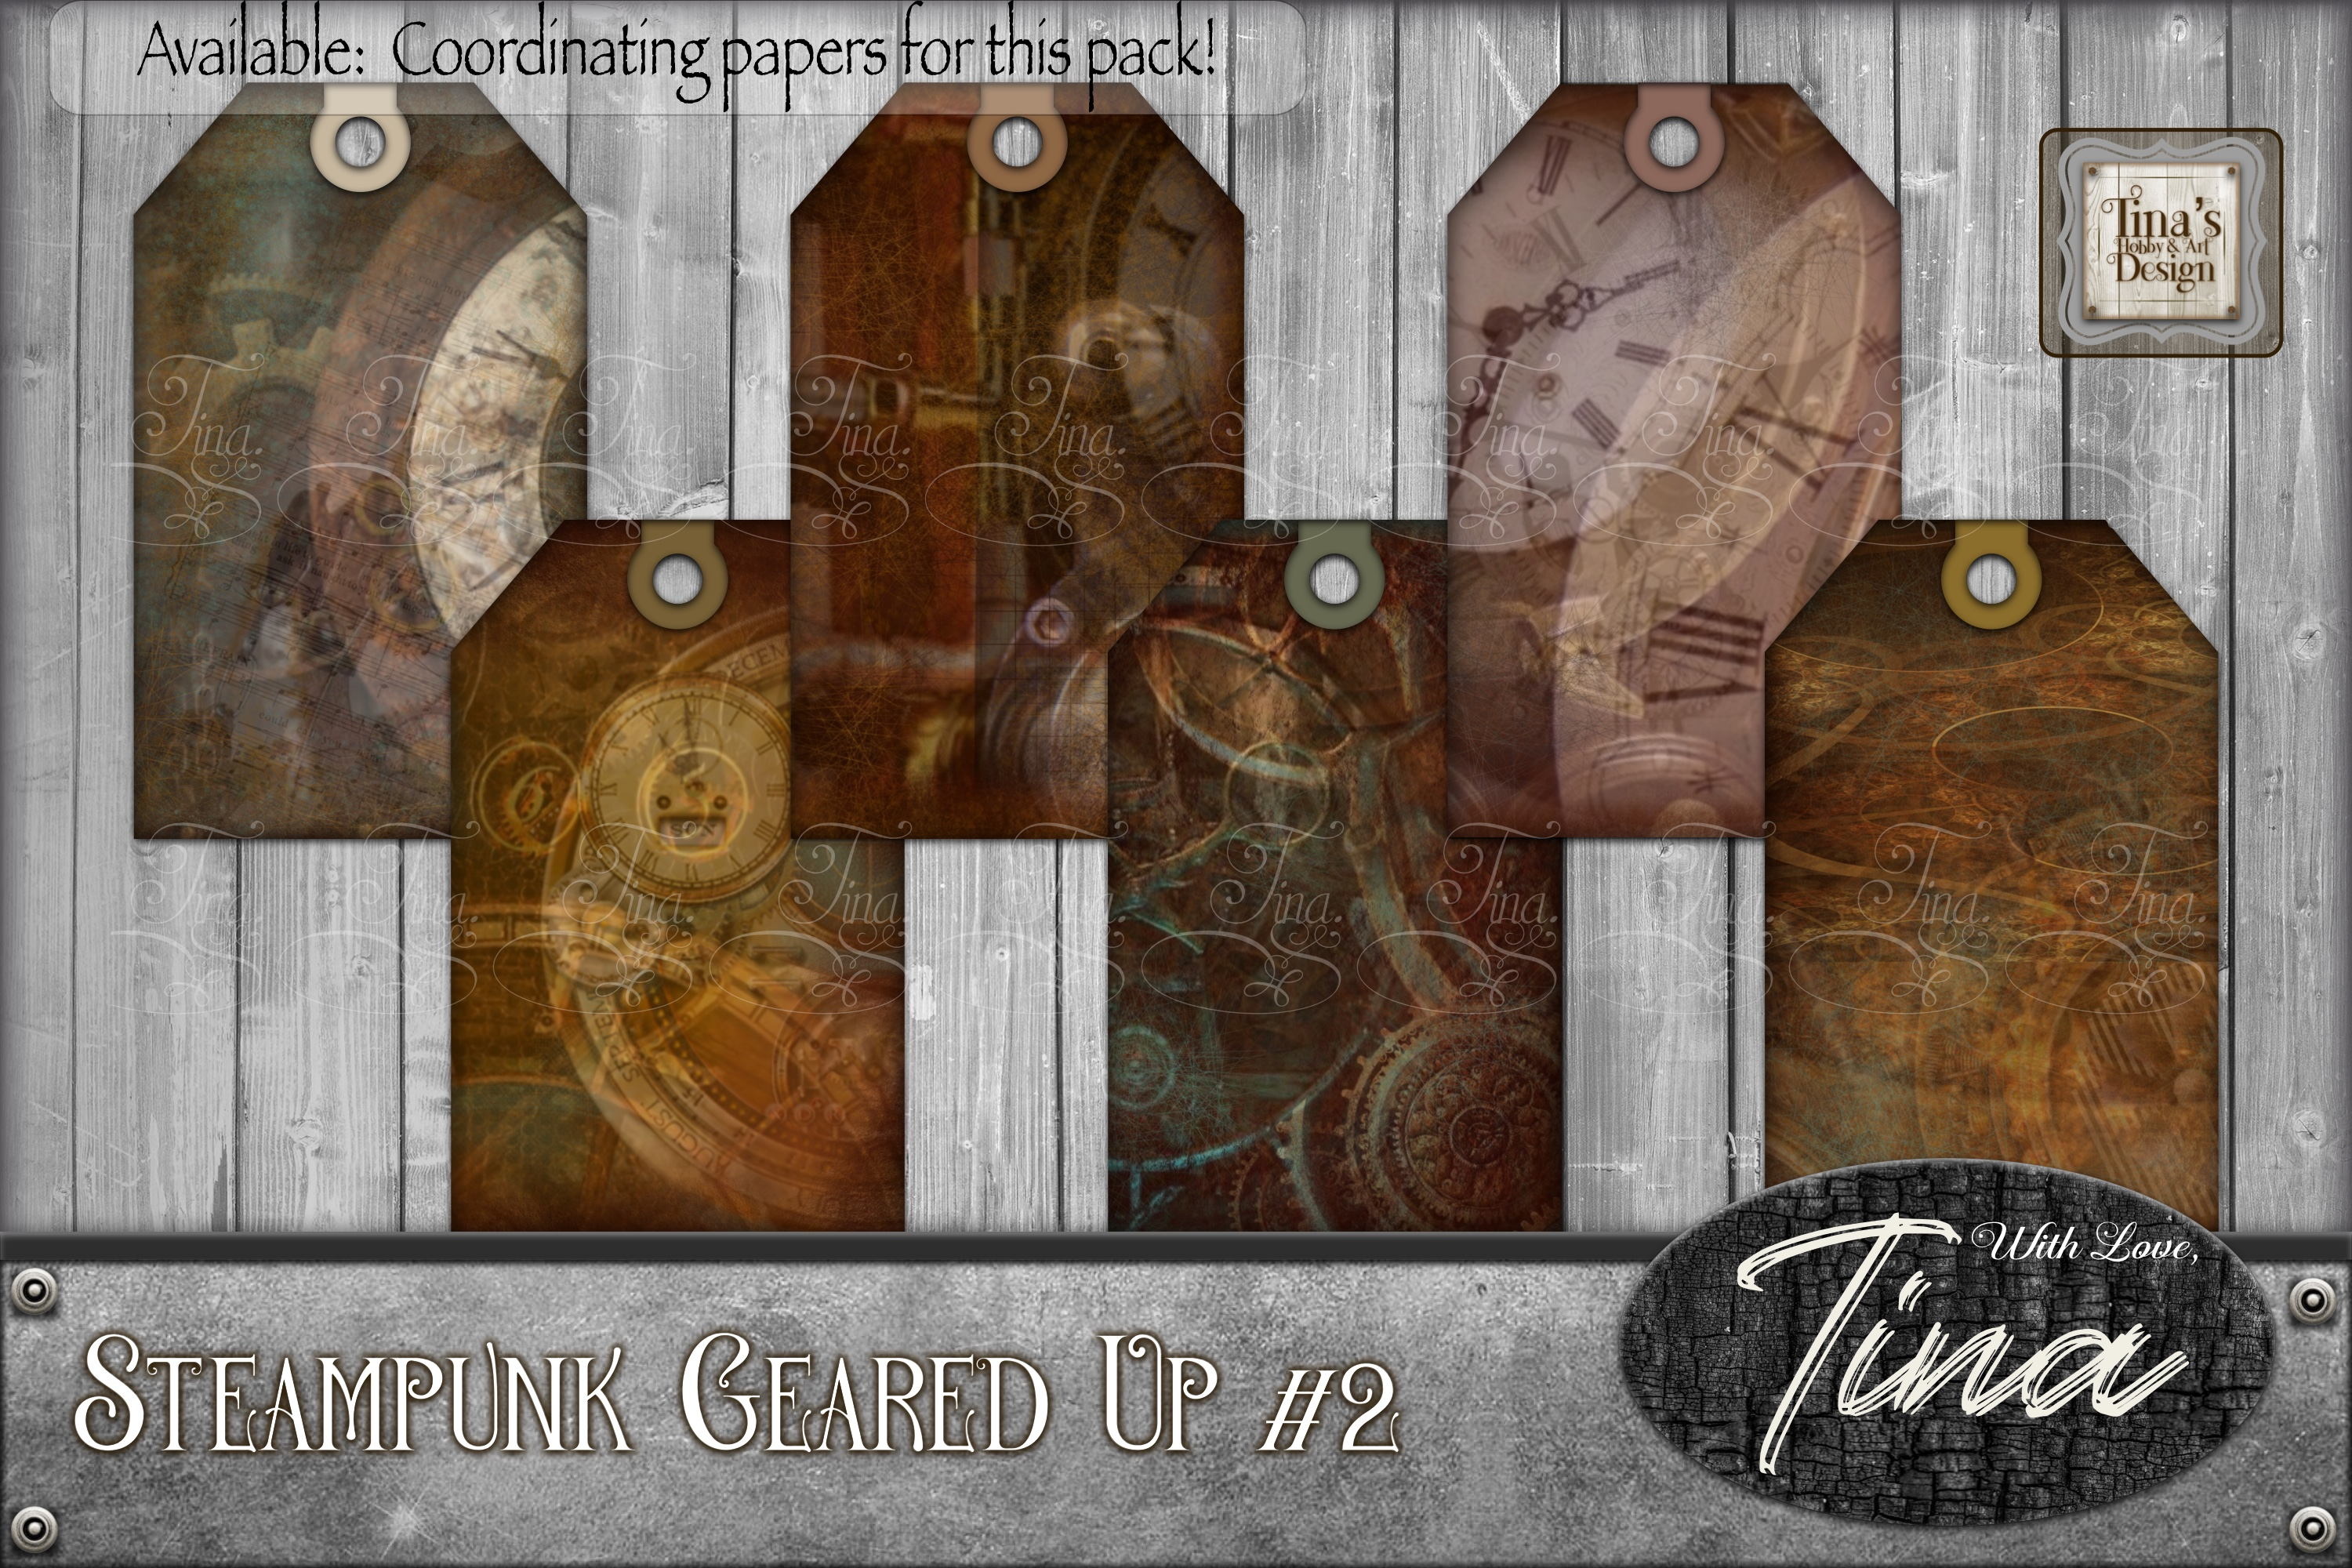 Steampunk Geared Up Gears Clocks Grunge Tags 092918GU2a example image 1